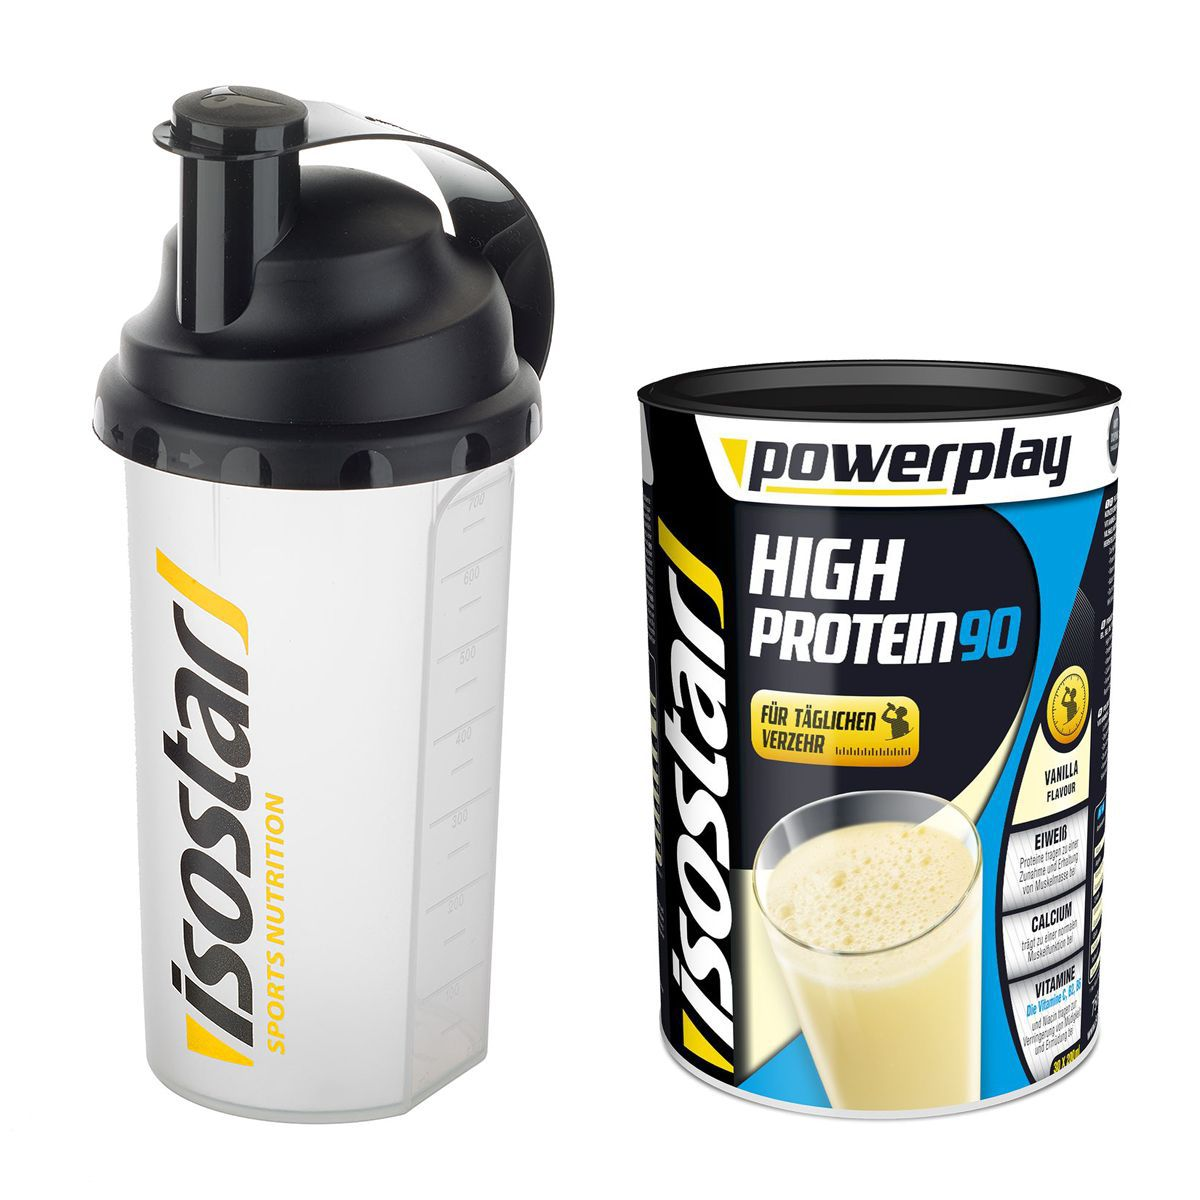 High Protein 90 Set inkl. Shaker